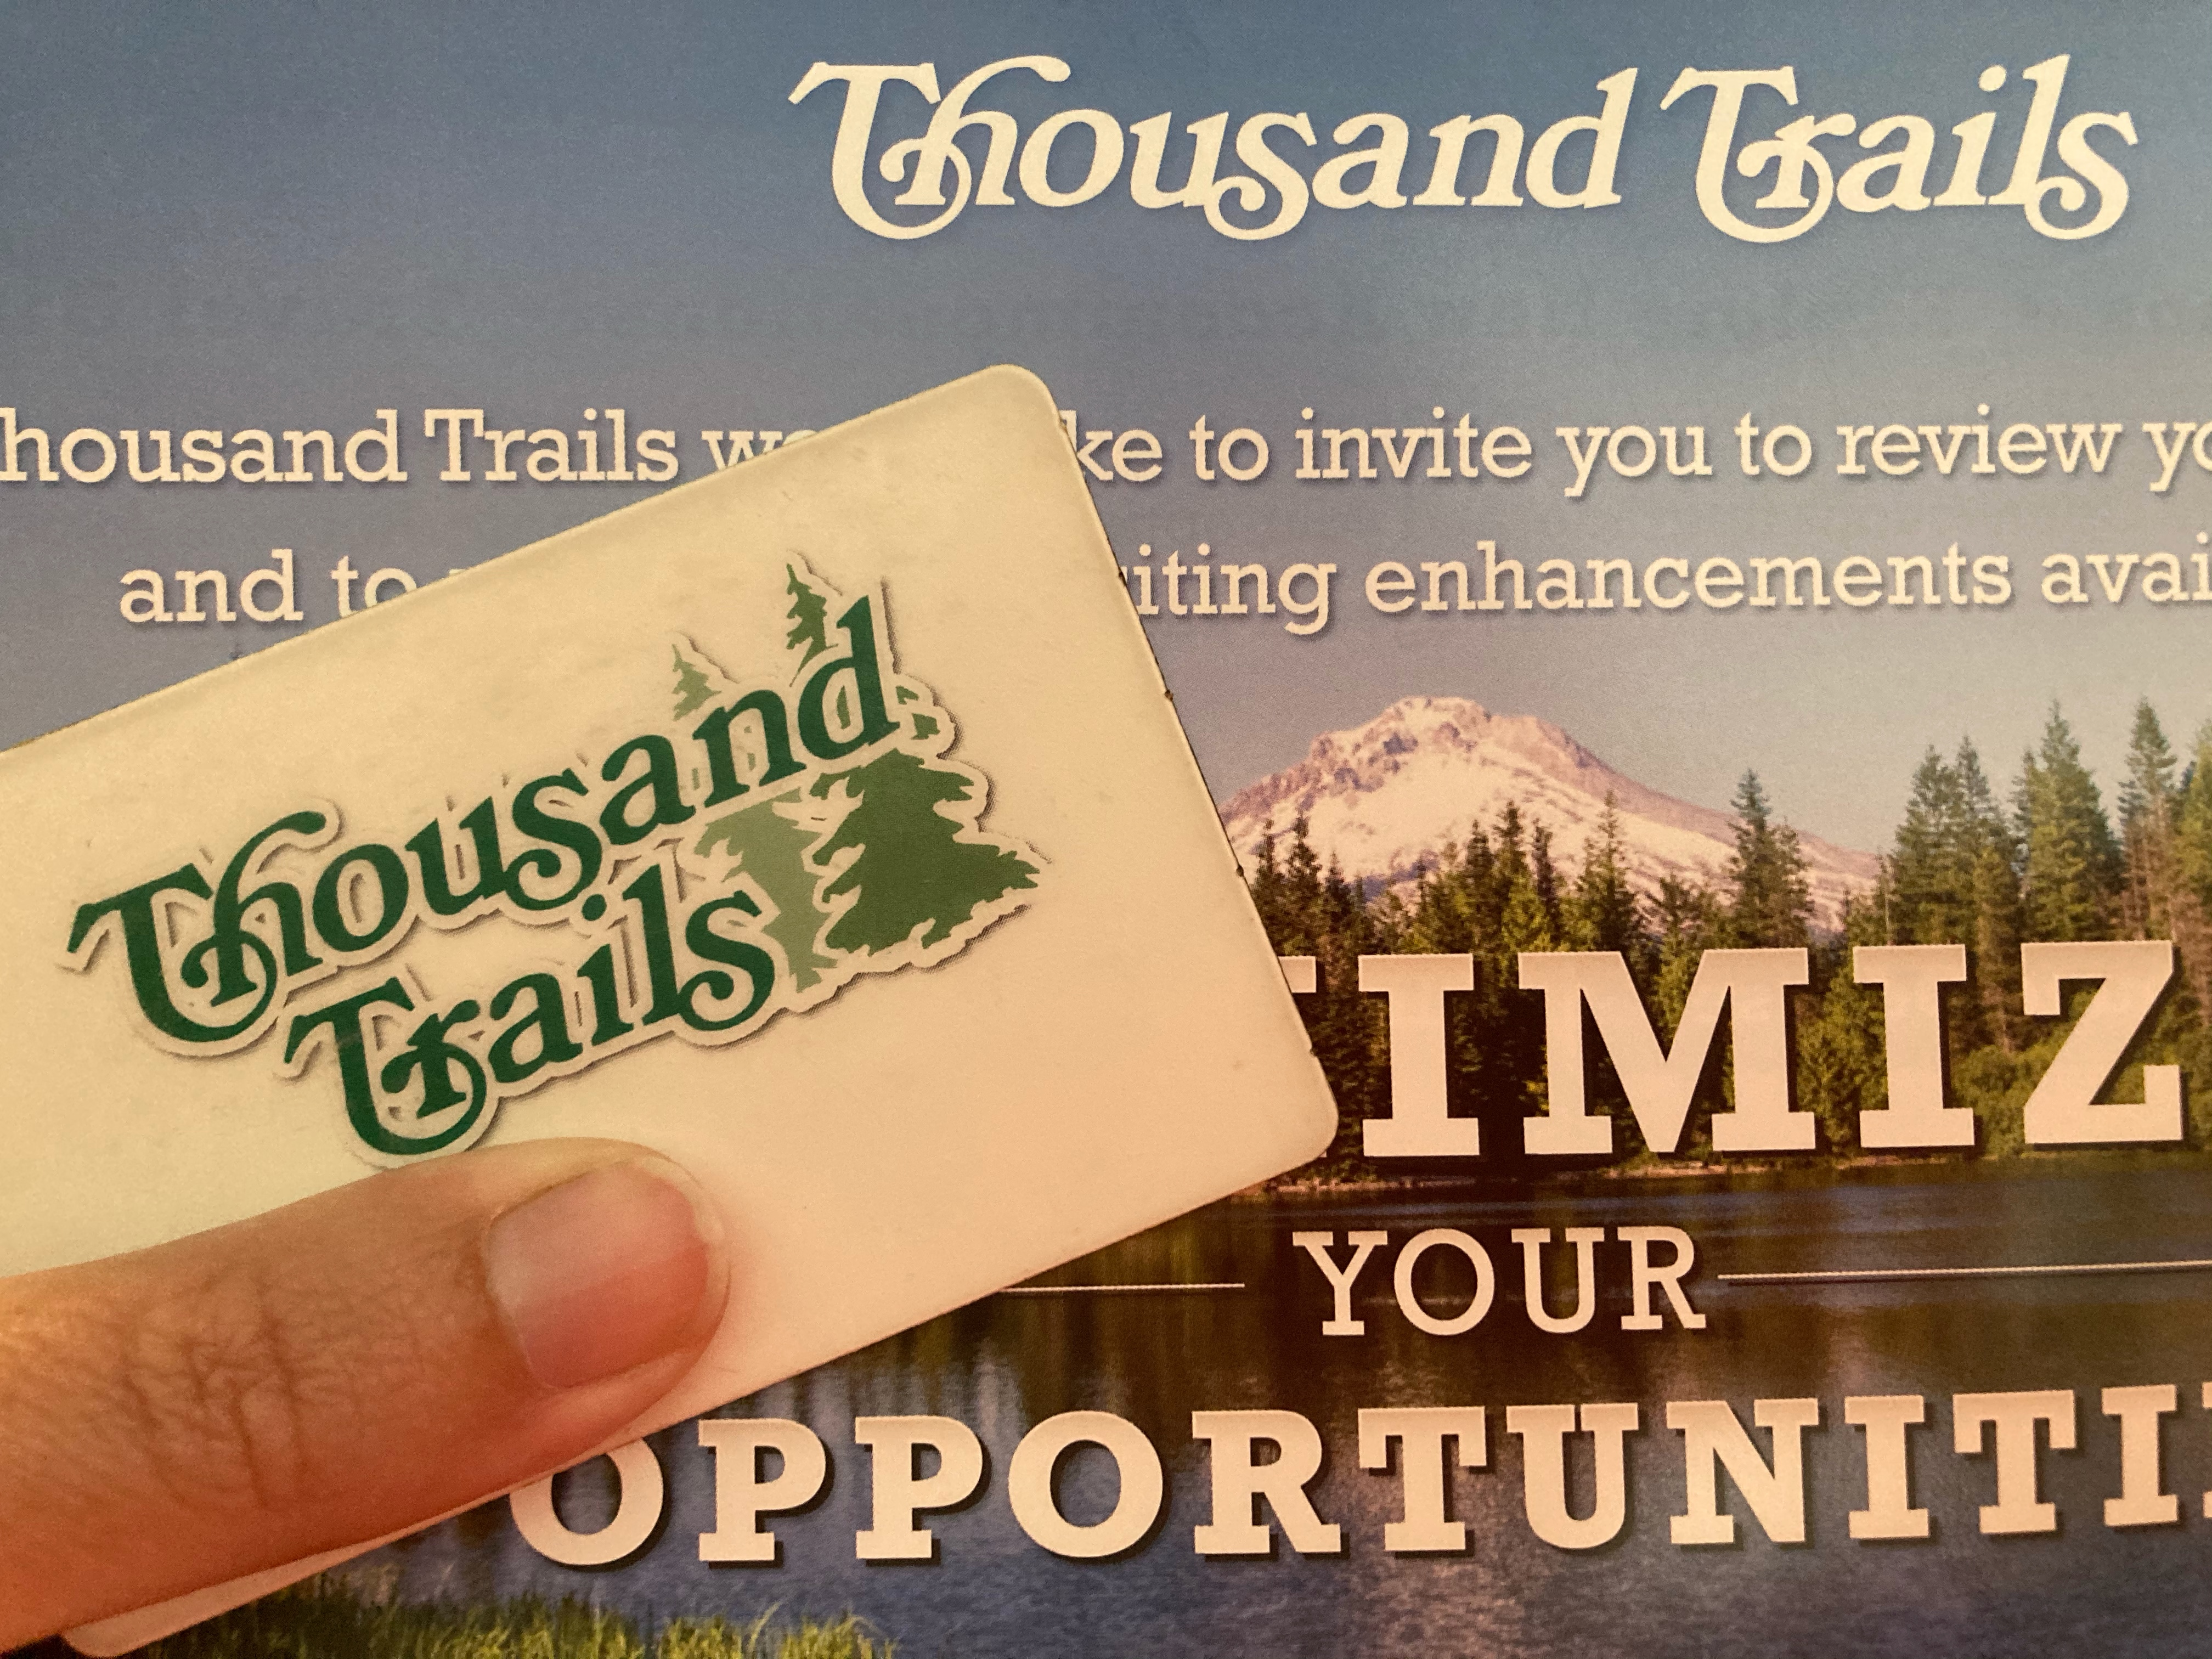 Holding a Thousand Trails Camping Pass